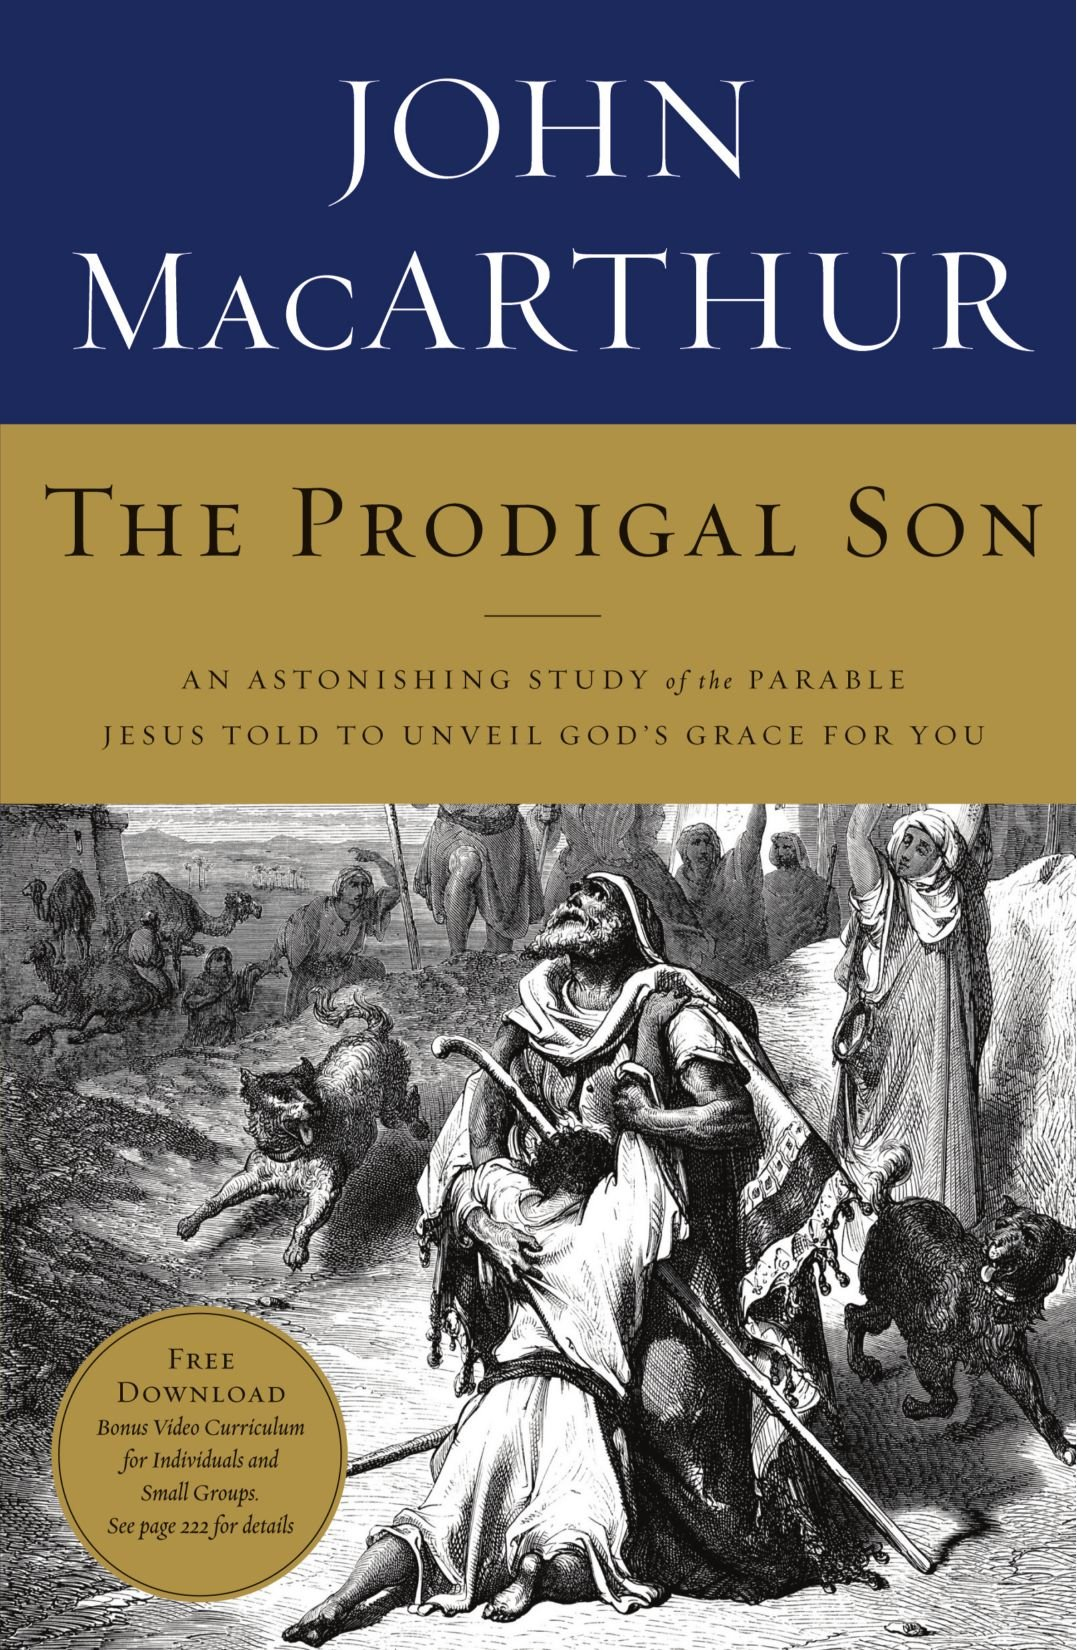 The Prodigal Son: An Astonishing Study of the Parable Jesus Told to Unveil  God's Grace for You: John F. MacArthur: 9781400202683: Amazon.com: Books